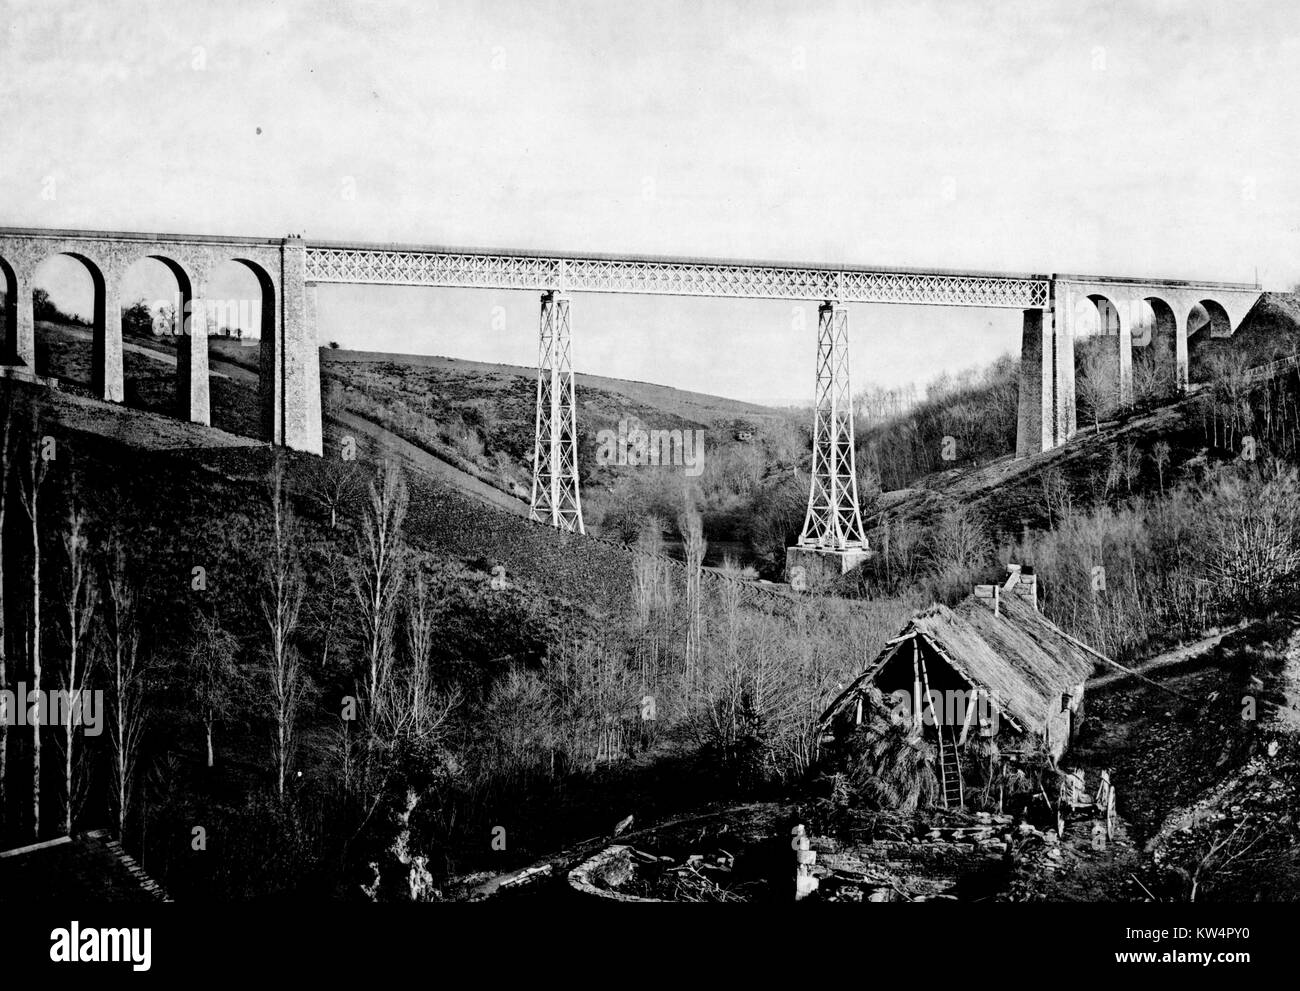 Bellon Viaduct, France, 1883. From the New York Public Library. - Stock Image